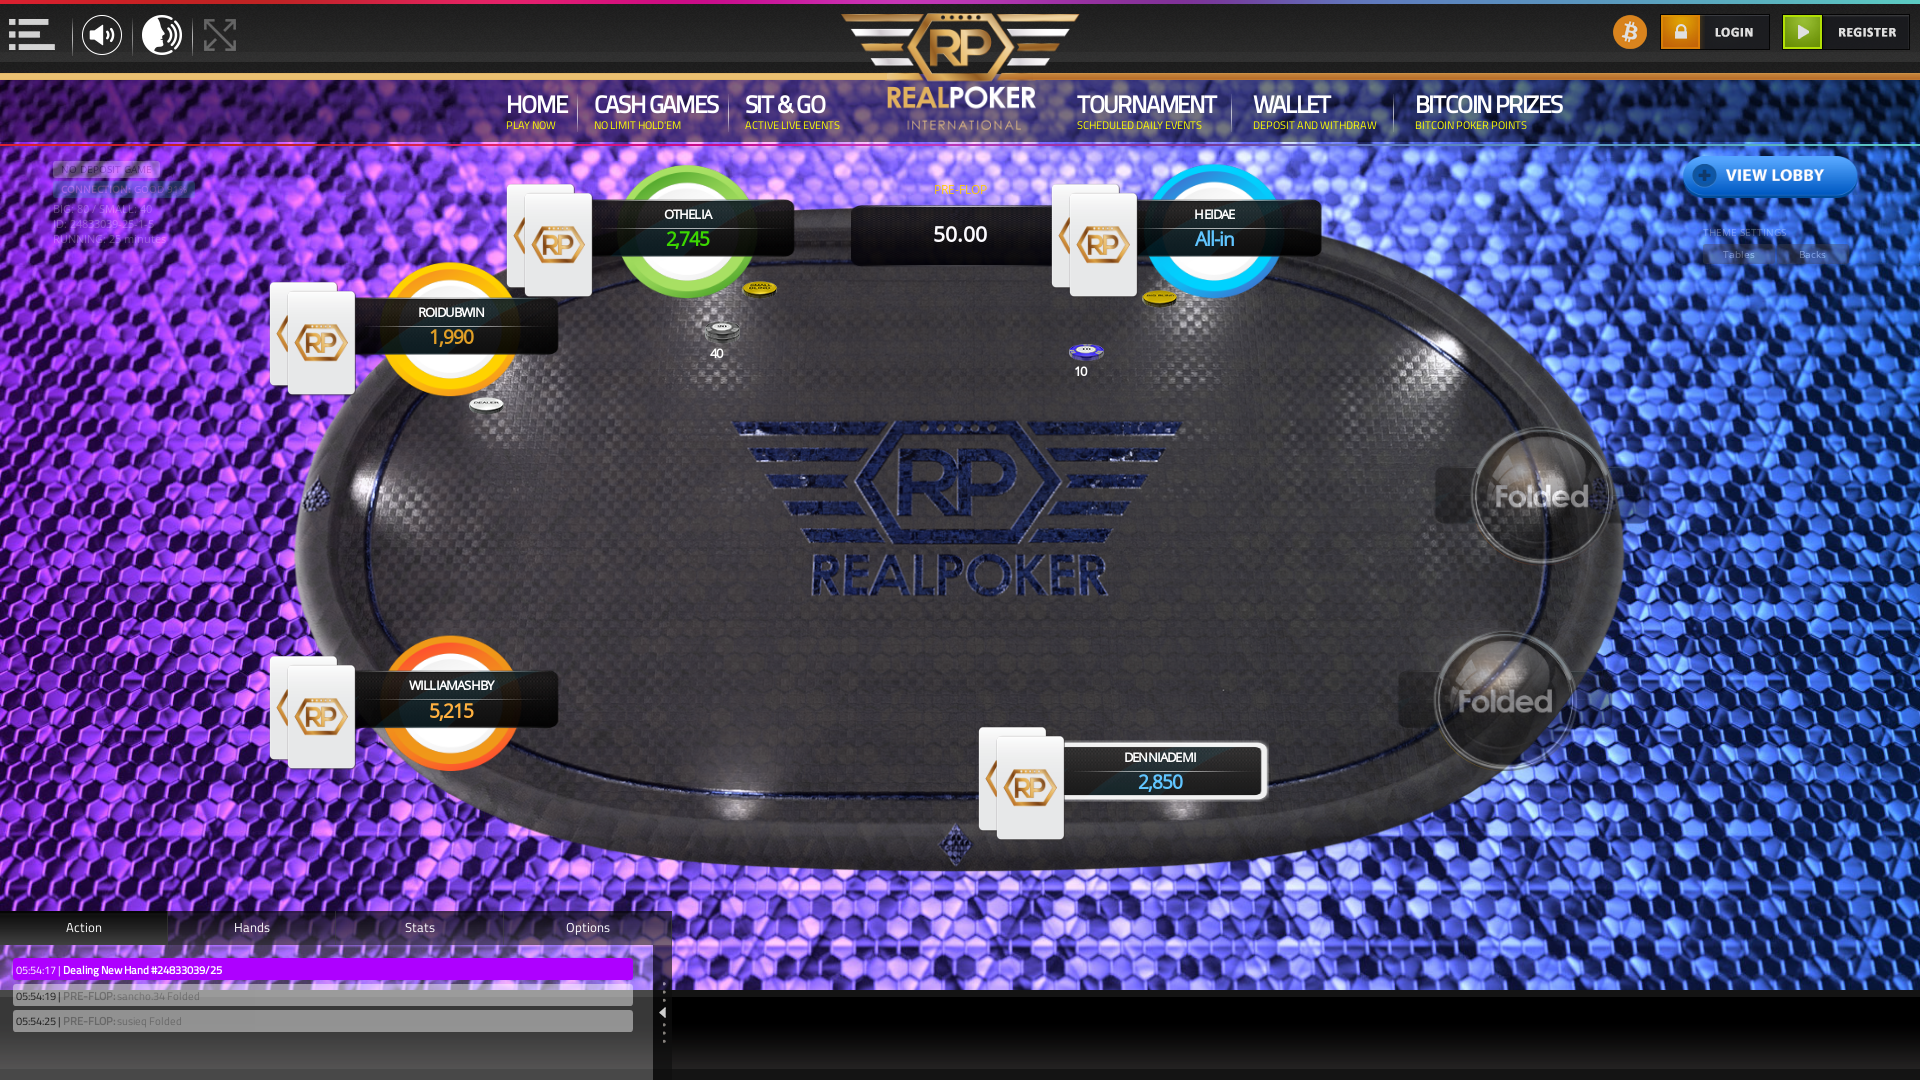 Real poker 10 player table in the 25th minute of the match